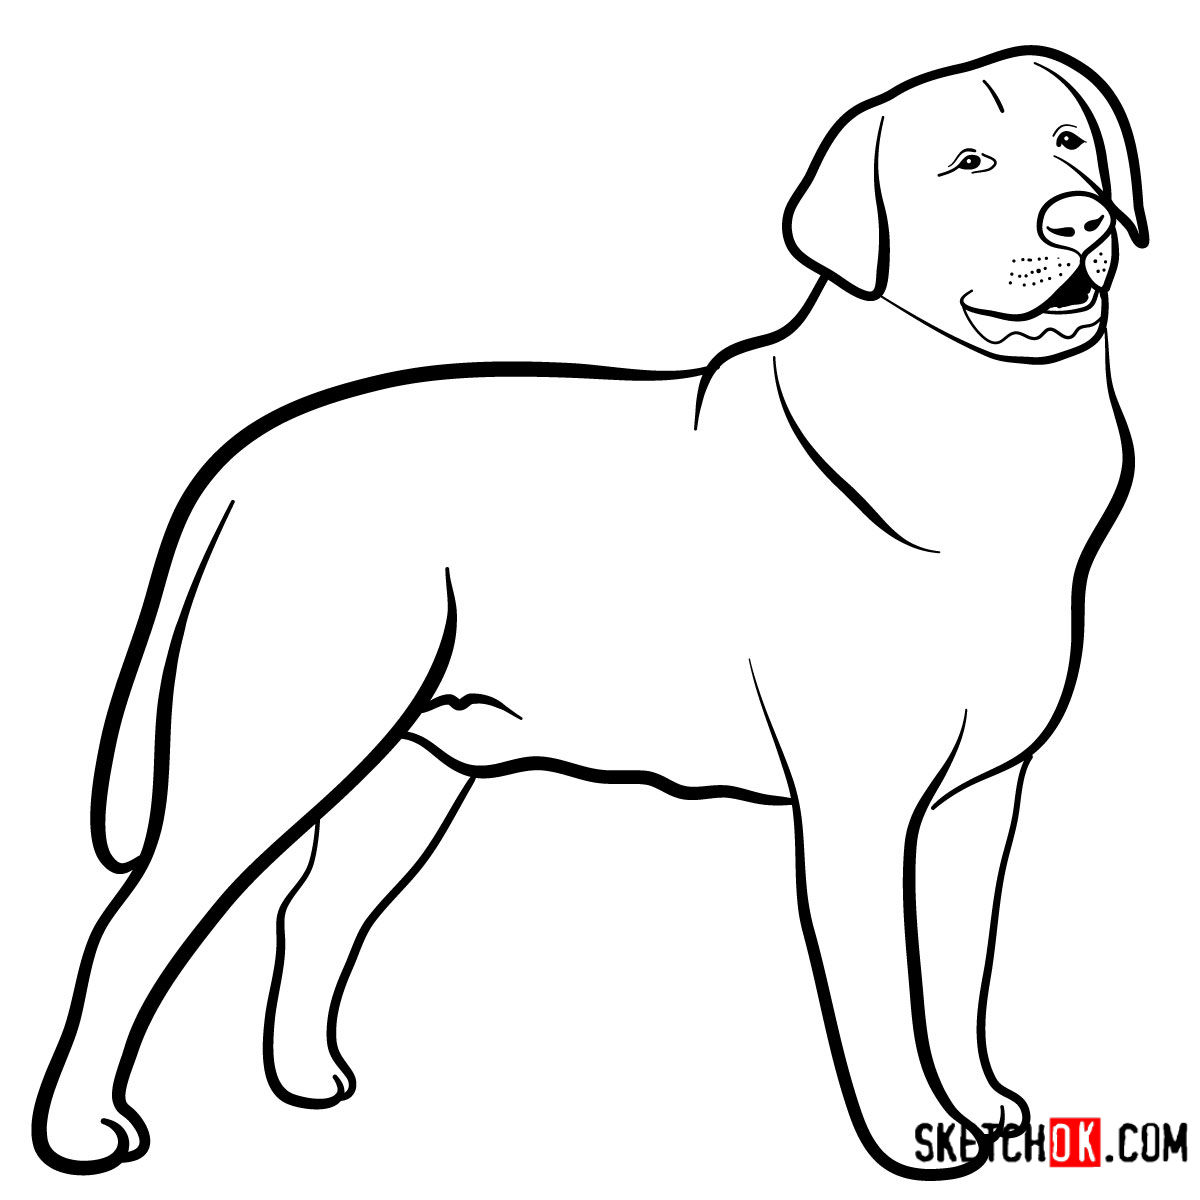 How to draw the Labrador Retriever dog